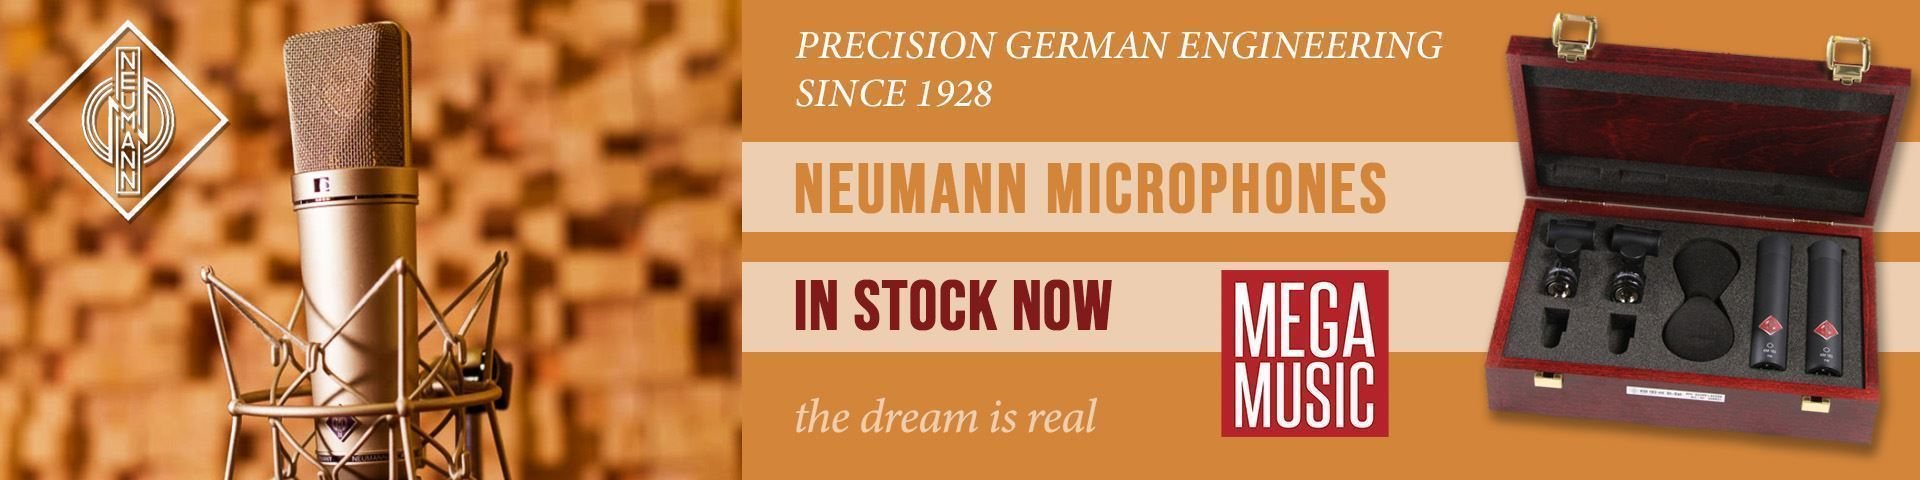 Neumann Microphones at Mega Music